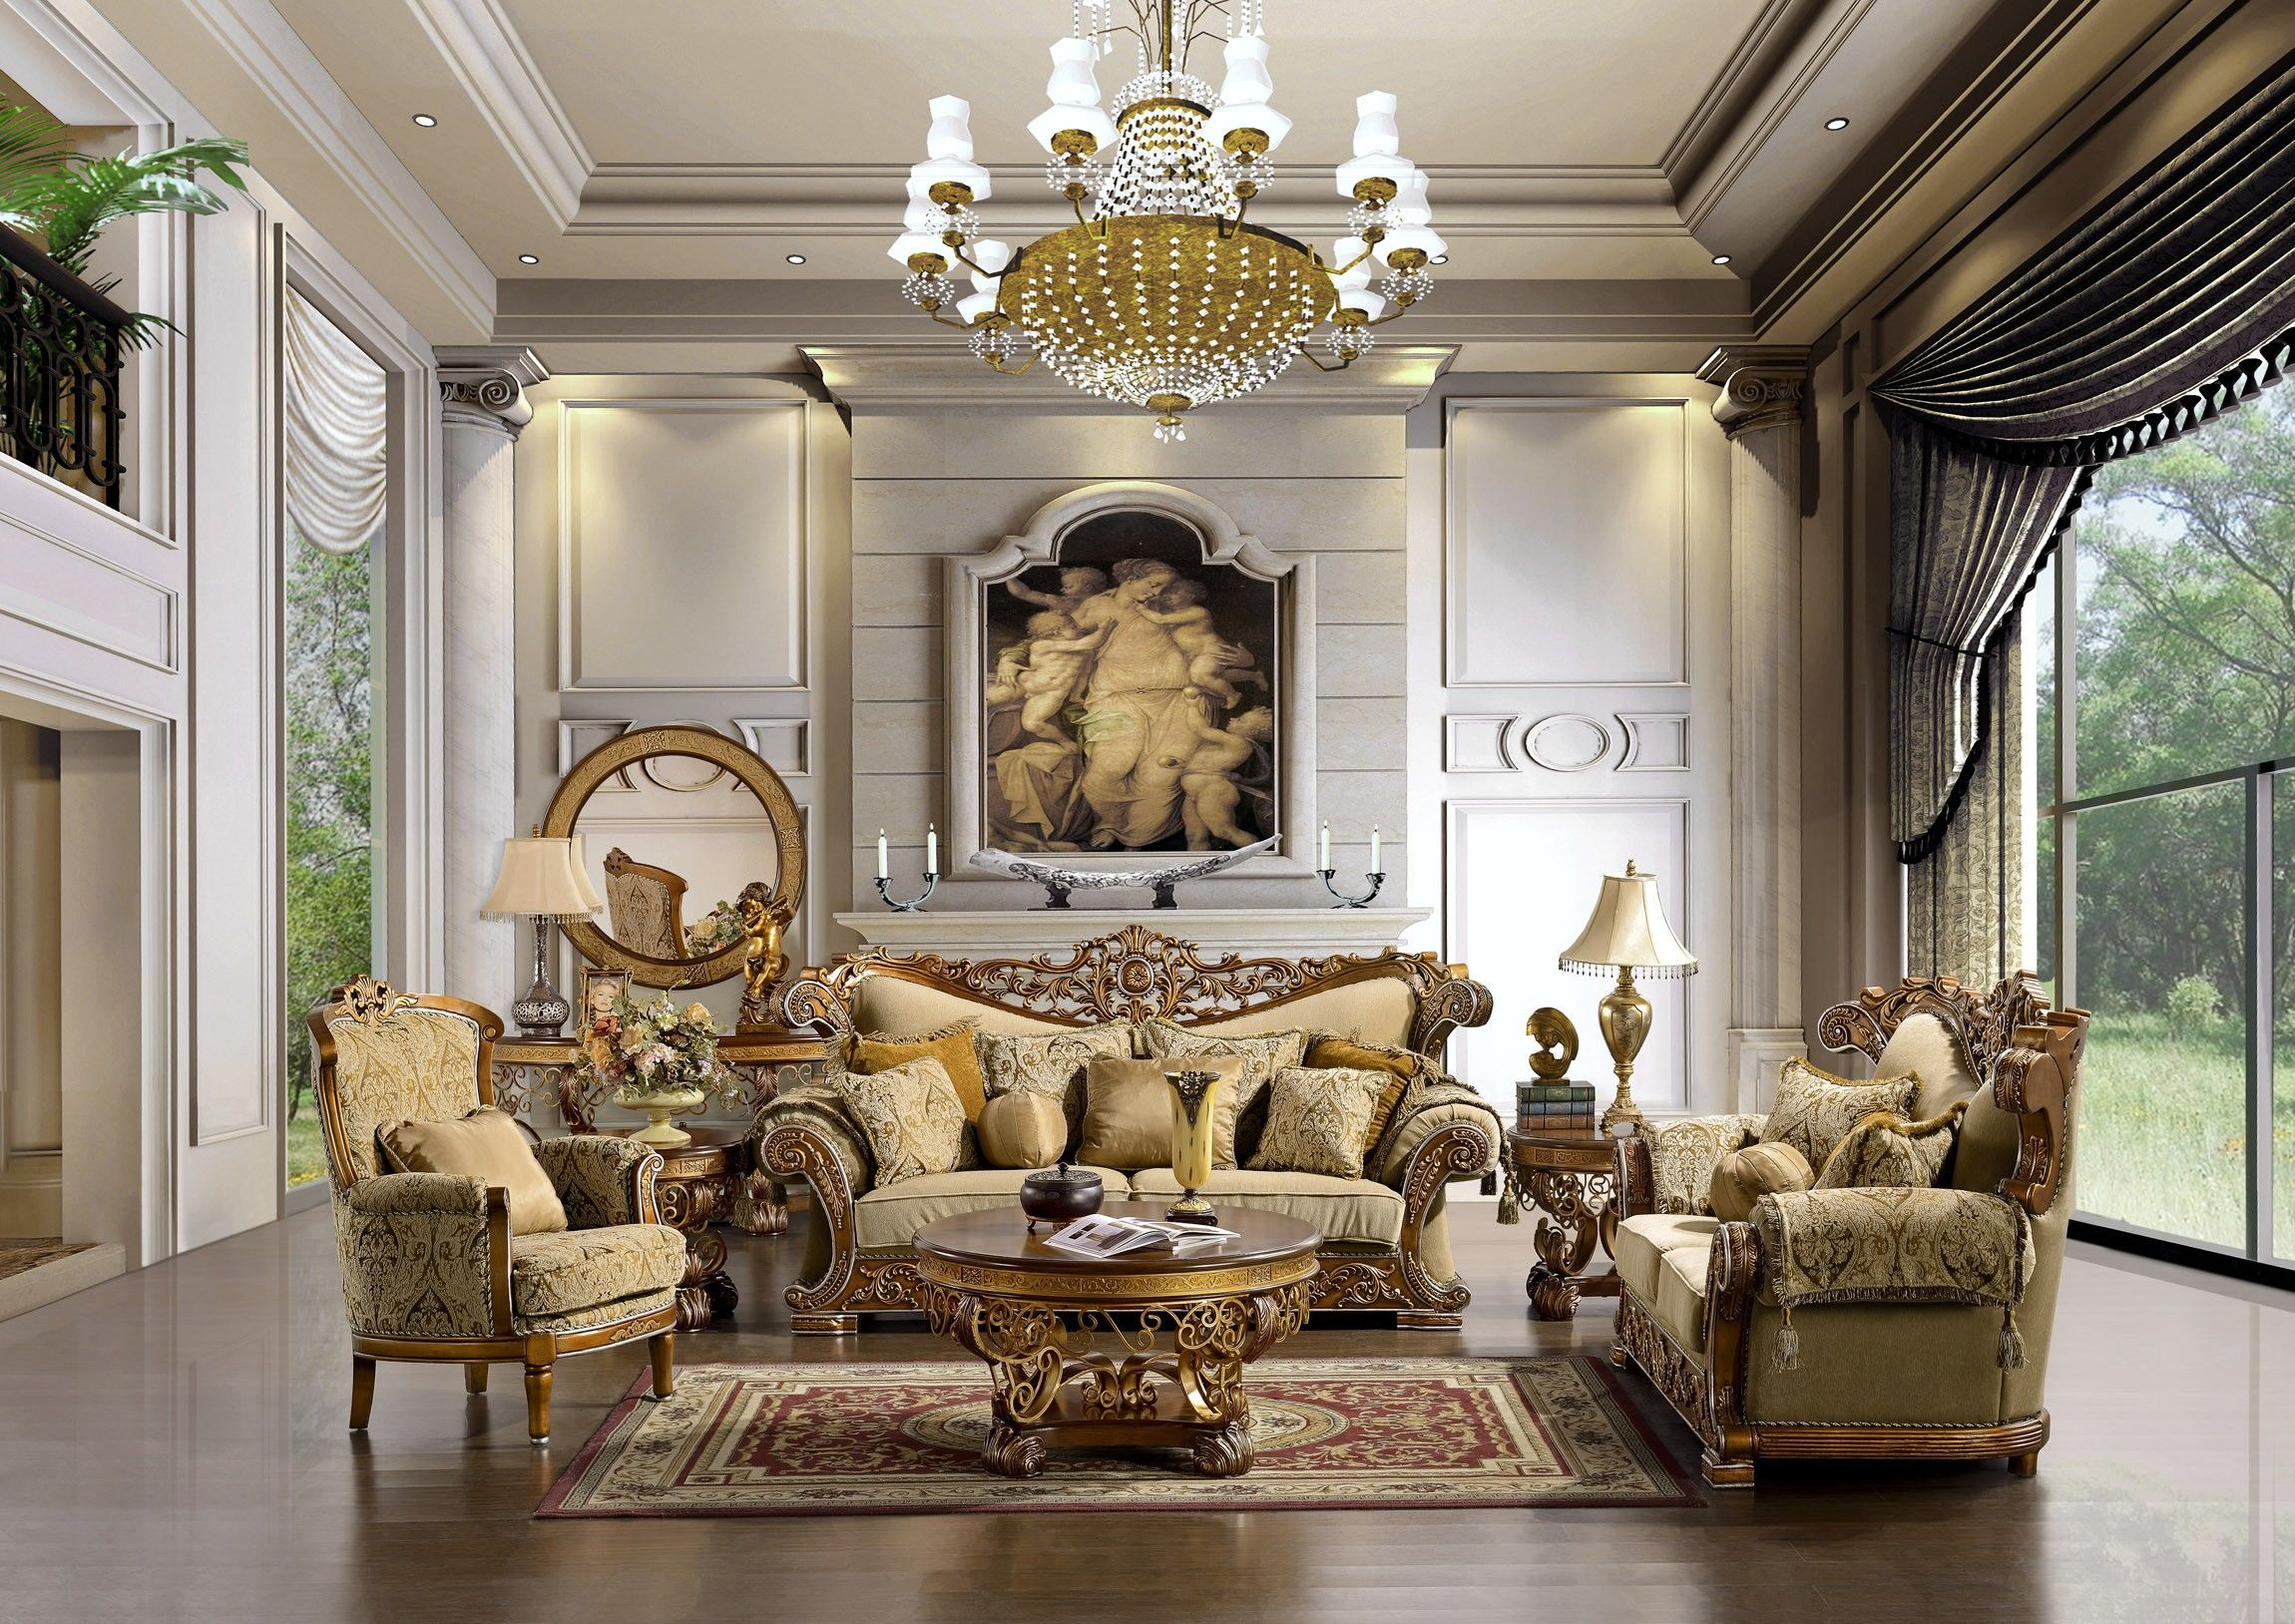 french formal interior design with traditional living room furniture